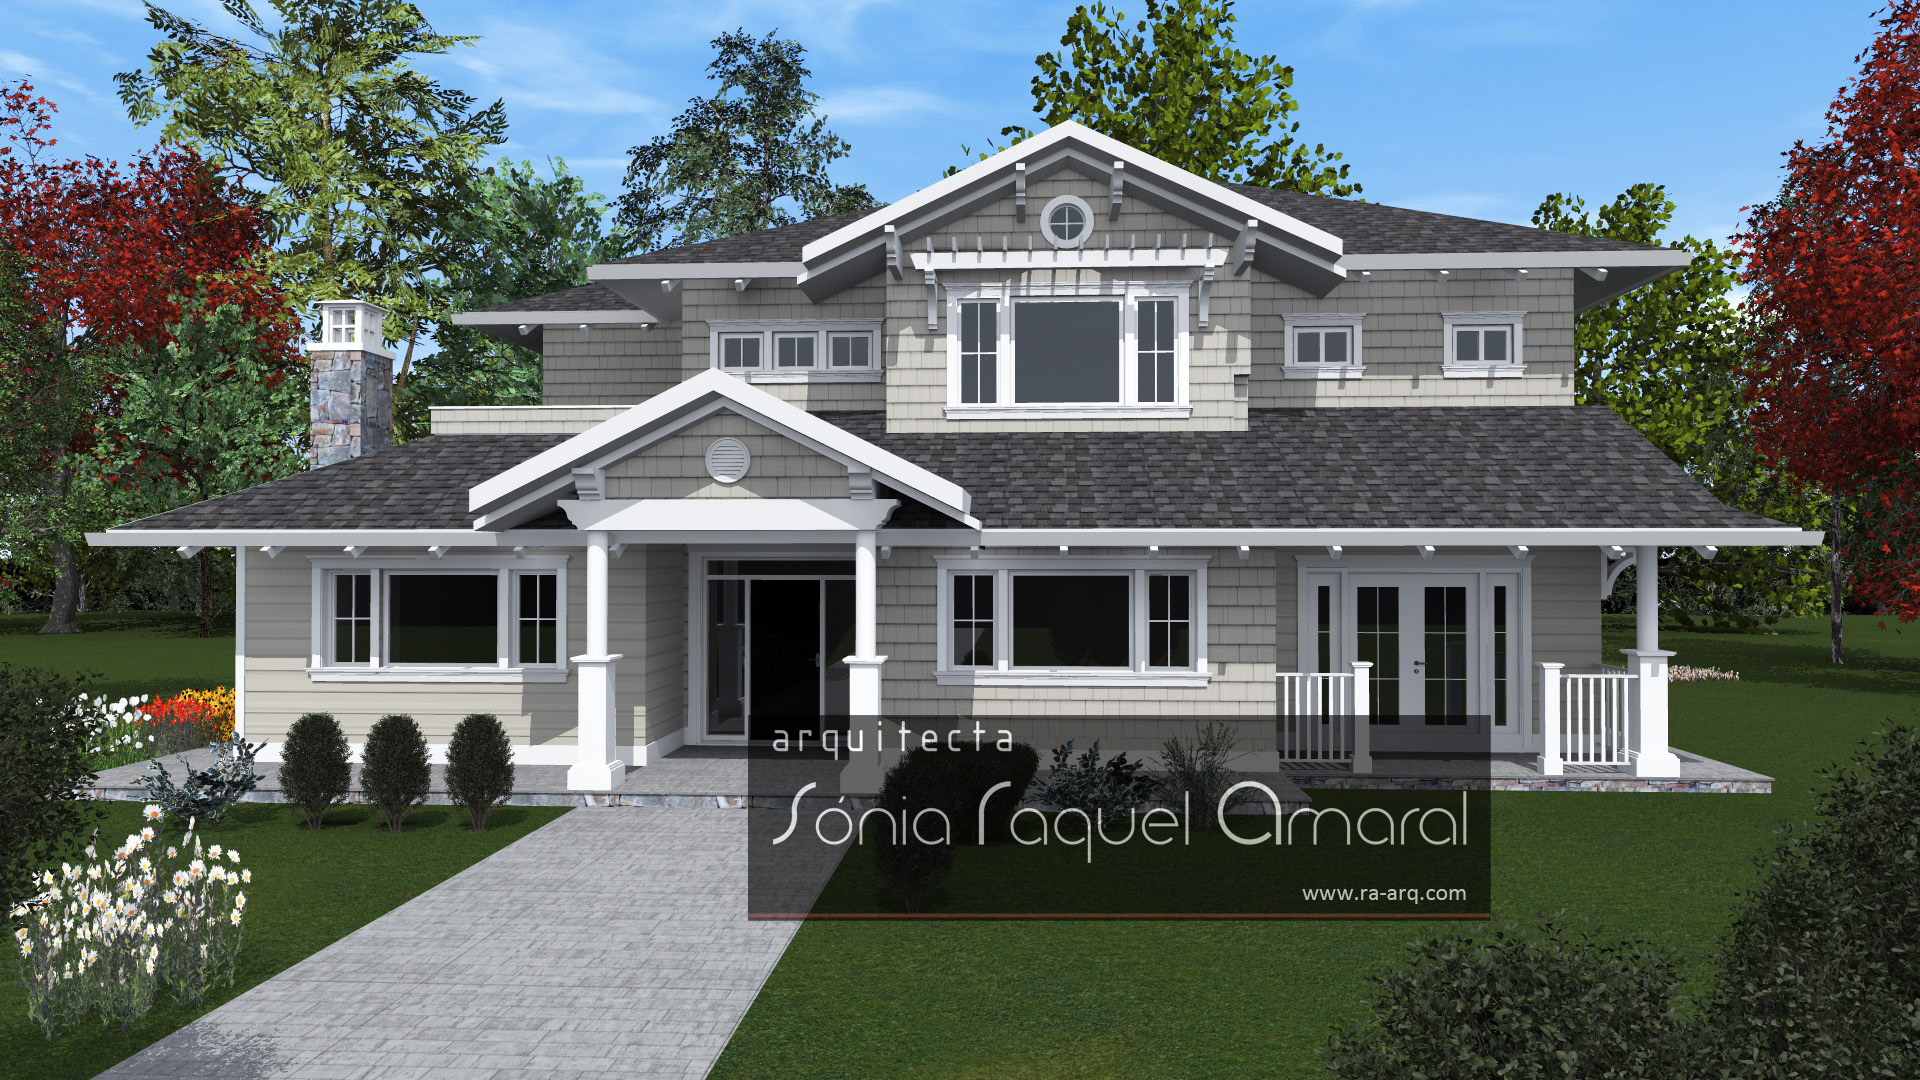 3d renderings single family houses richmond british columbia canada - Houses for families withchild ...